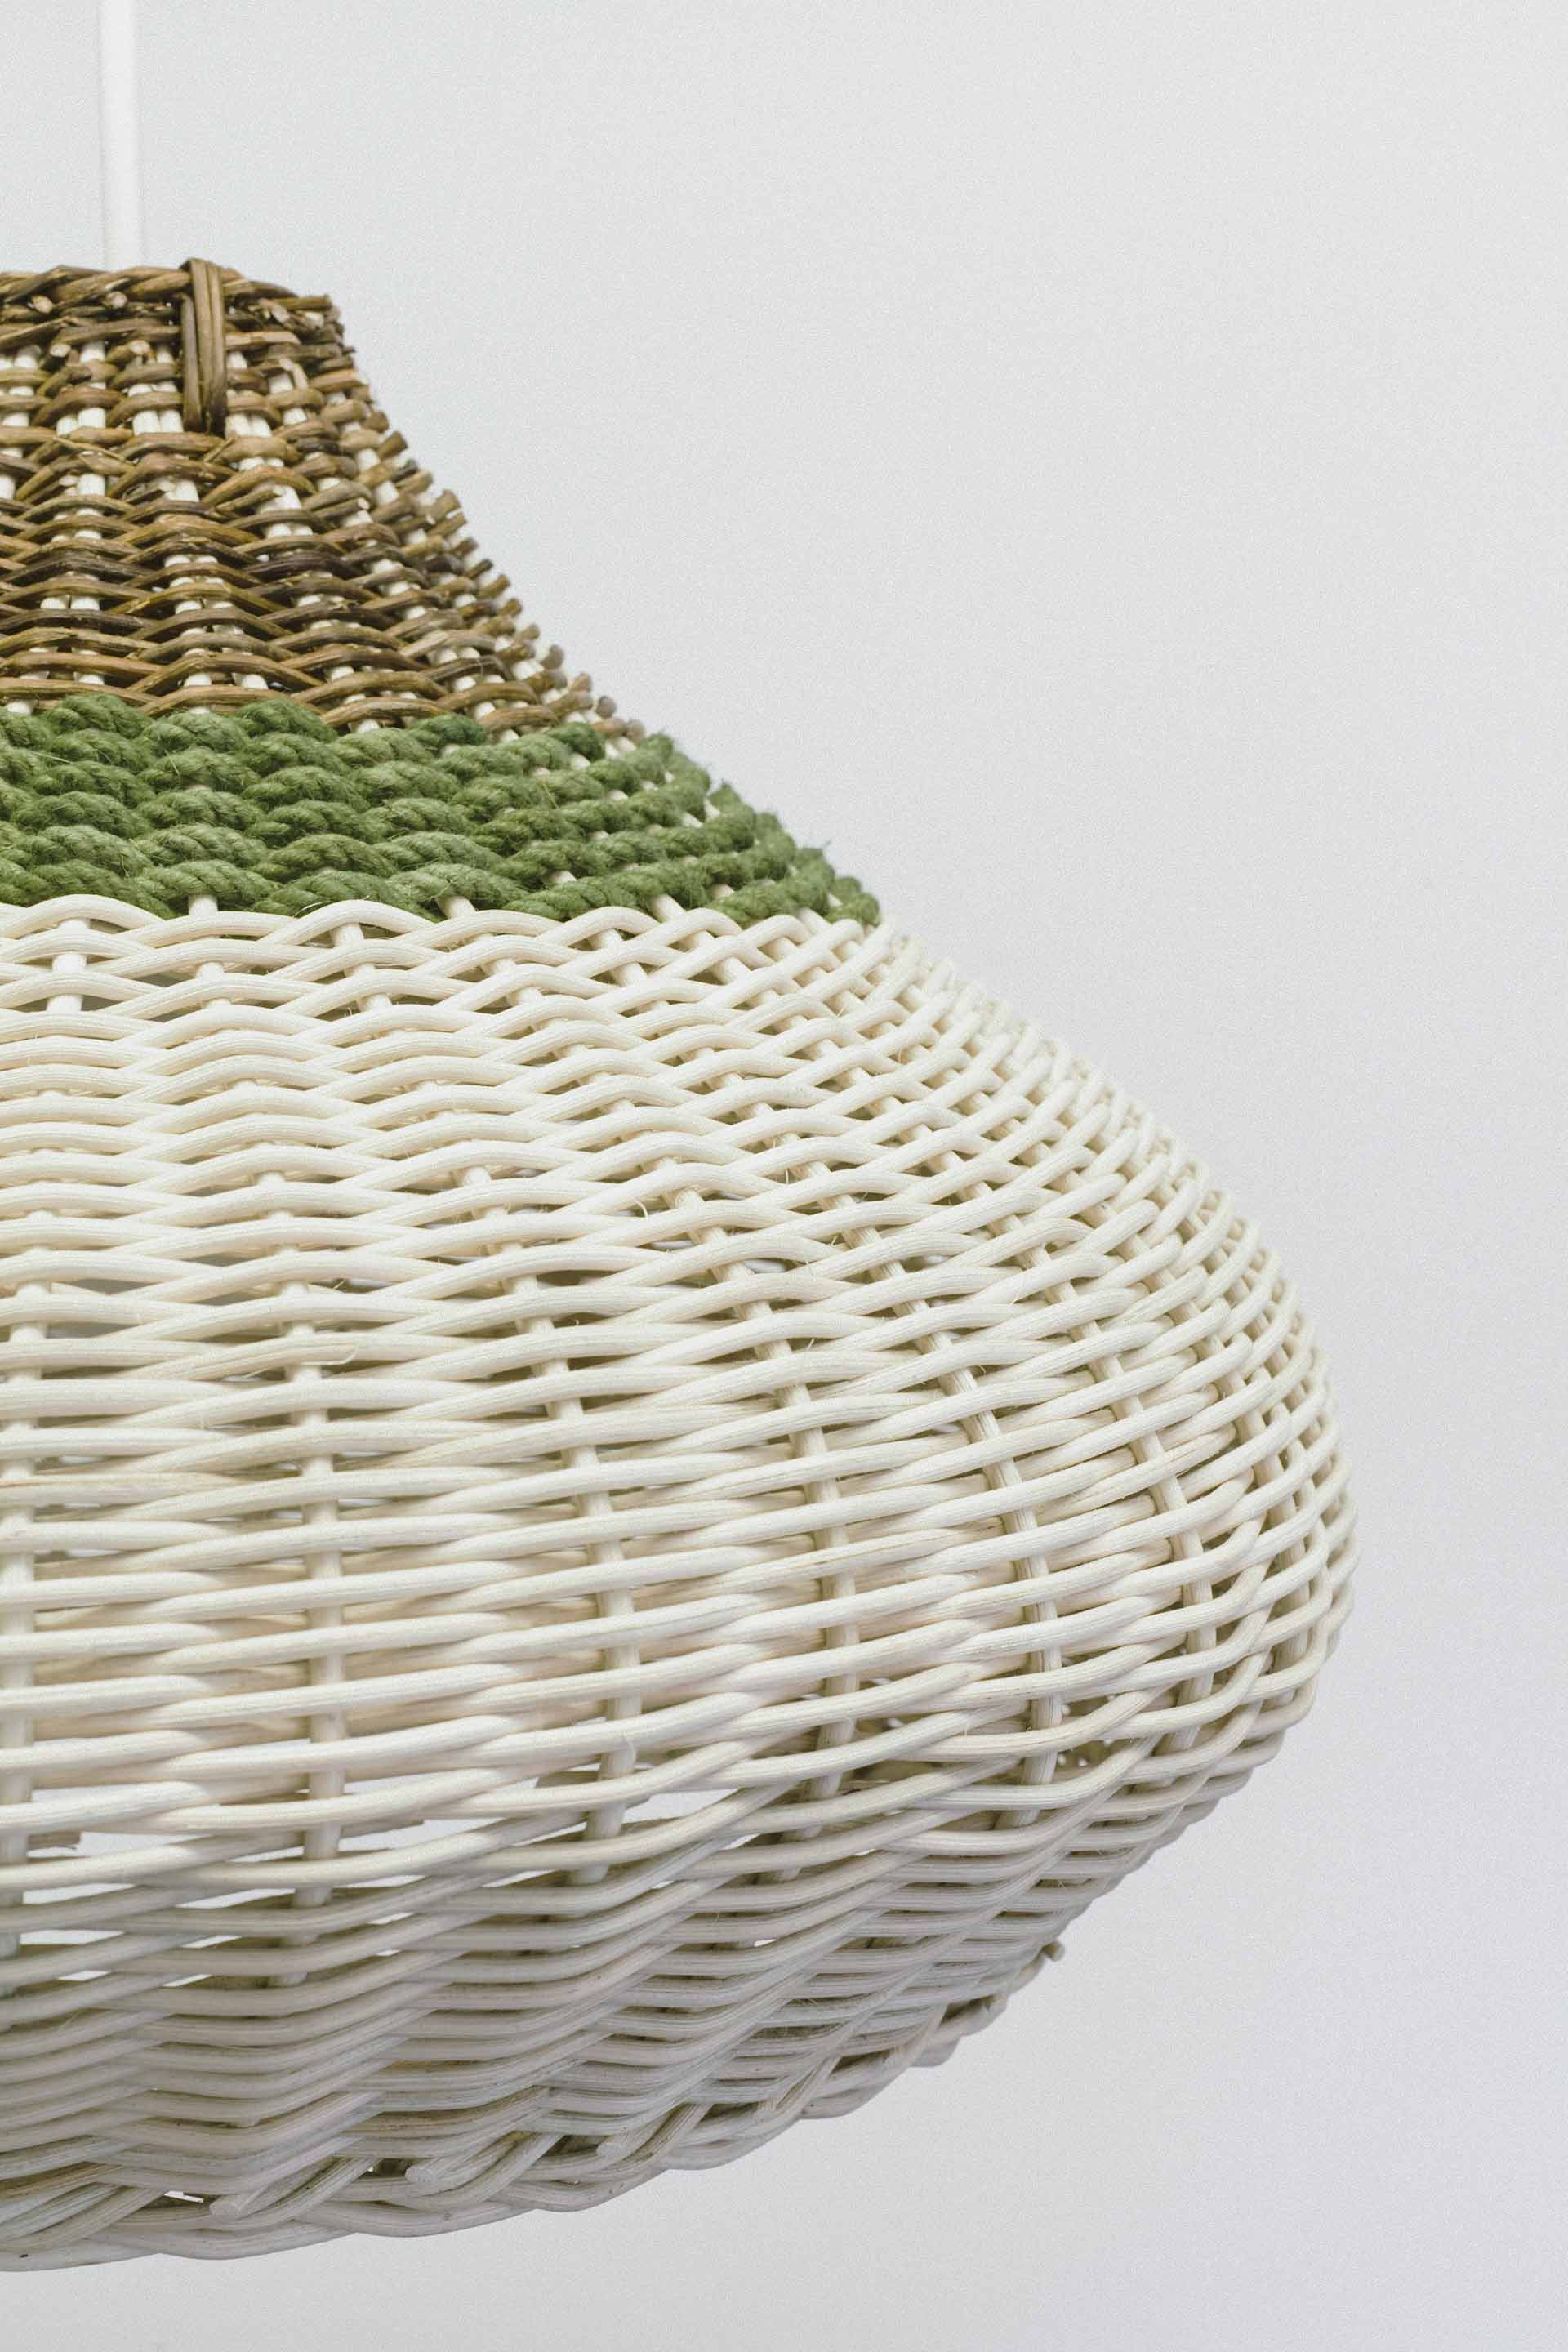 Detail of green band willow pendant designed by Boex